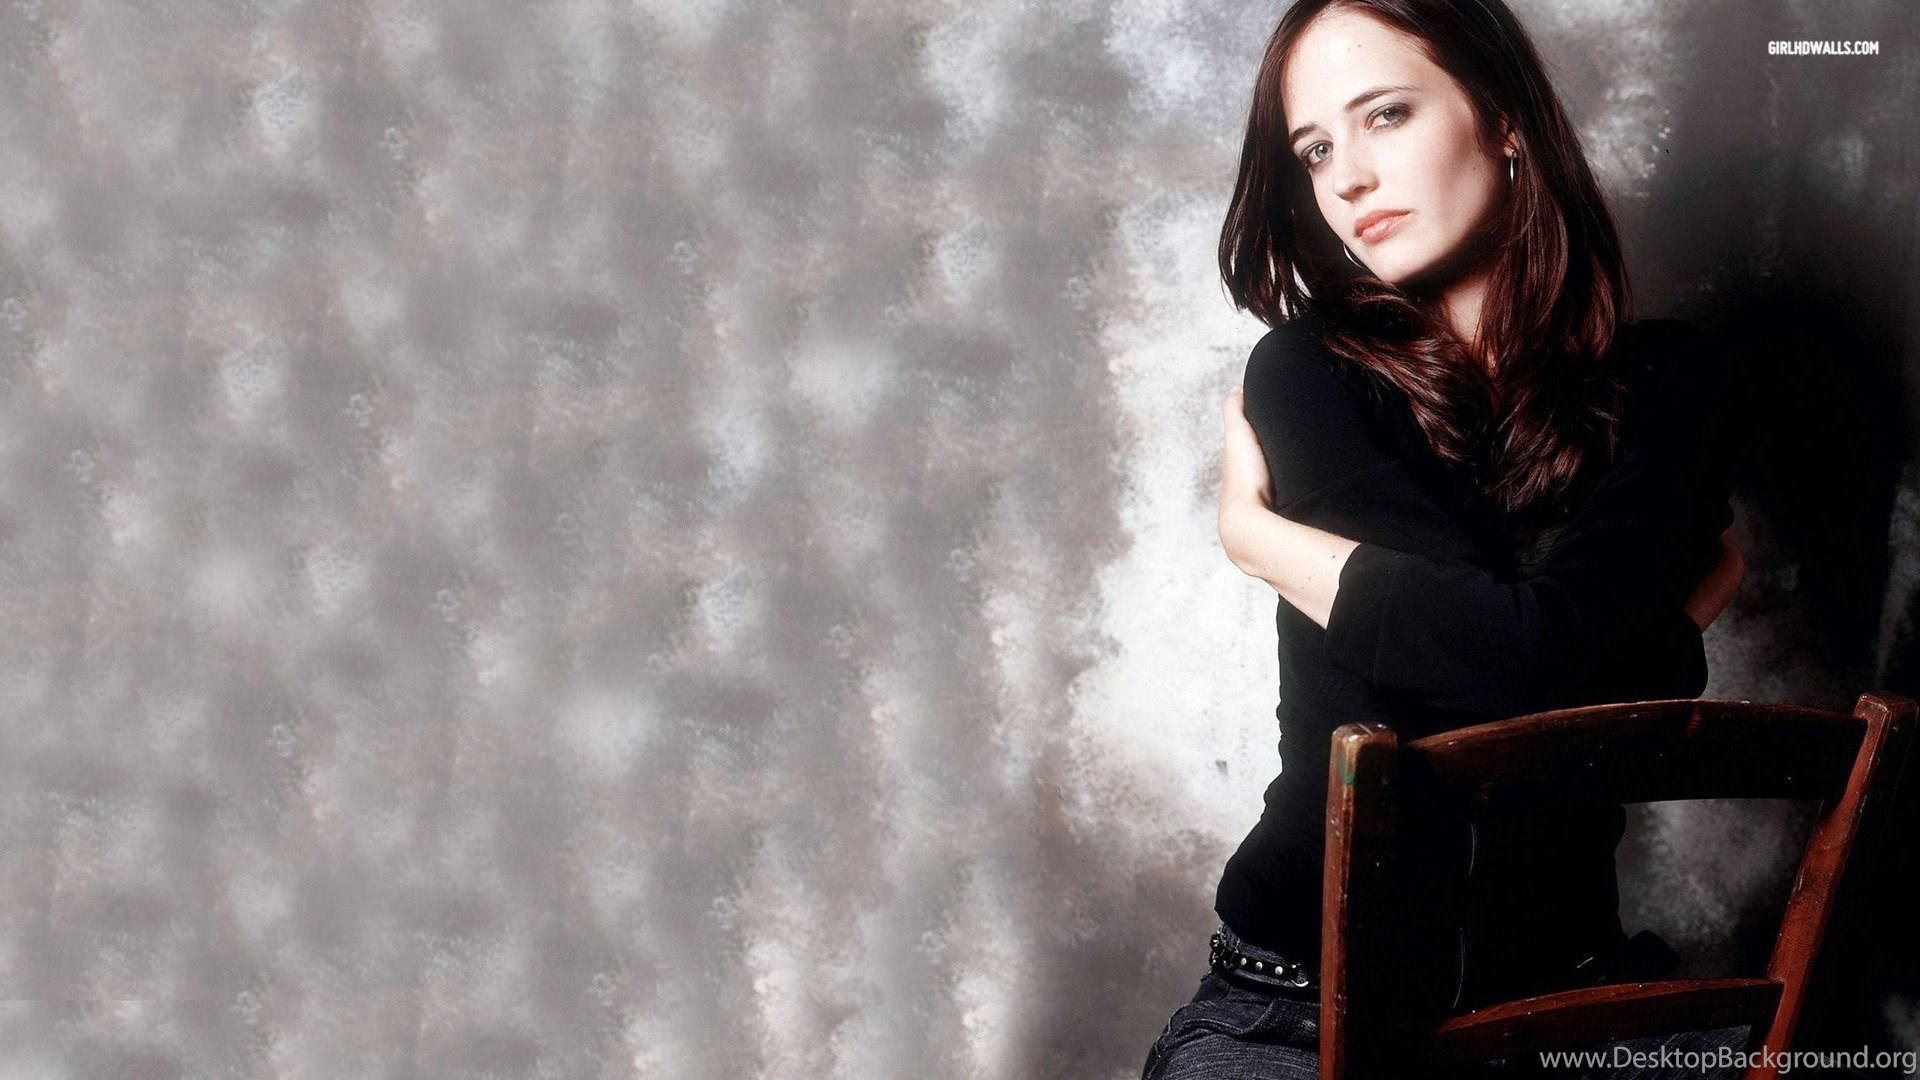 eva green wallpapers, images, photos & pictures desktop background